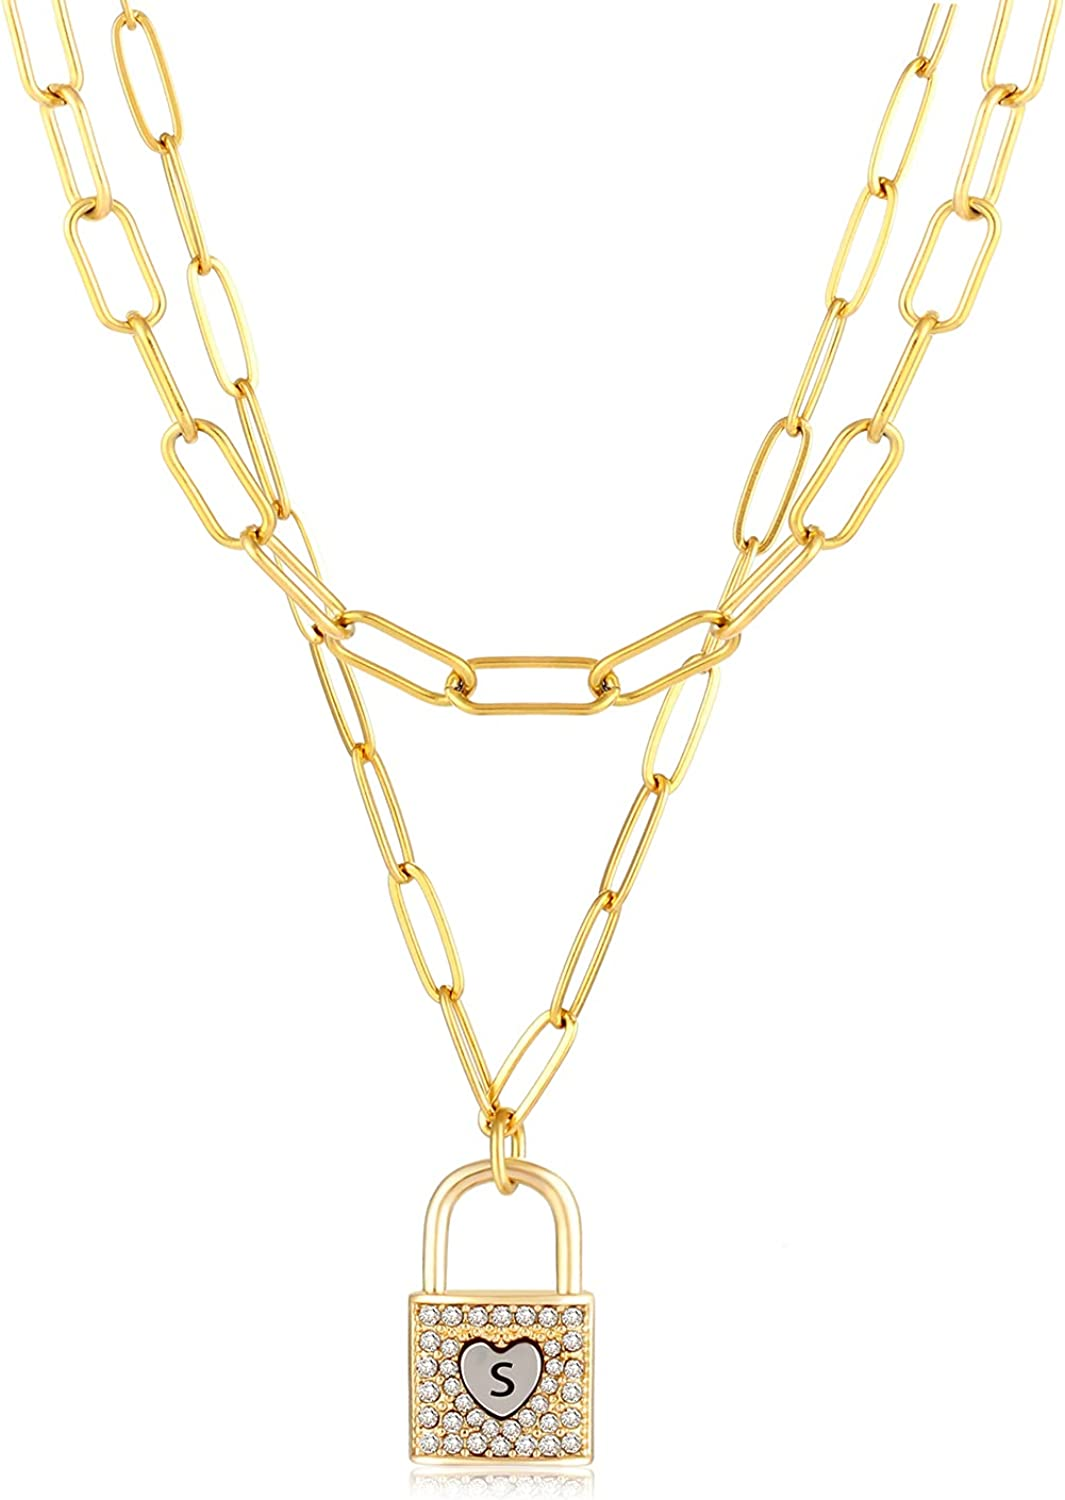 POSHFEEL Initial Lock & Heart Sharp Pendant Necklace for Women, 14K Gold Double Layer Dainty Paperclip Link Chain for Girls Jewelry